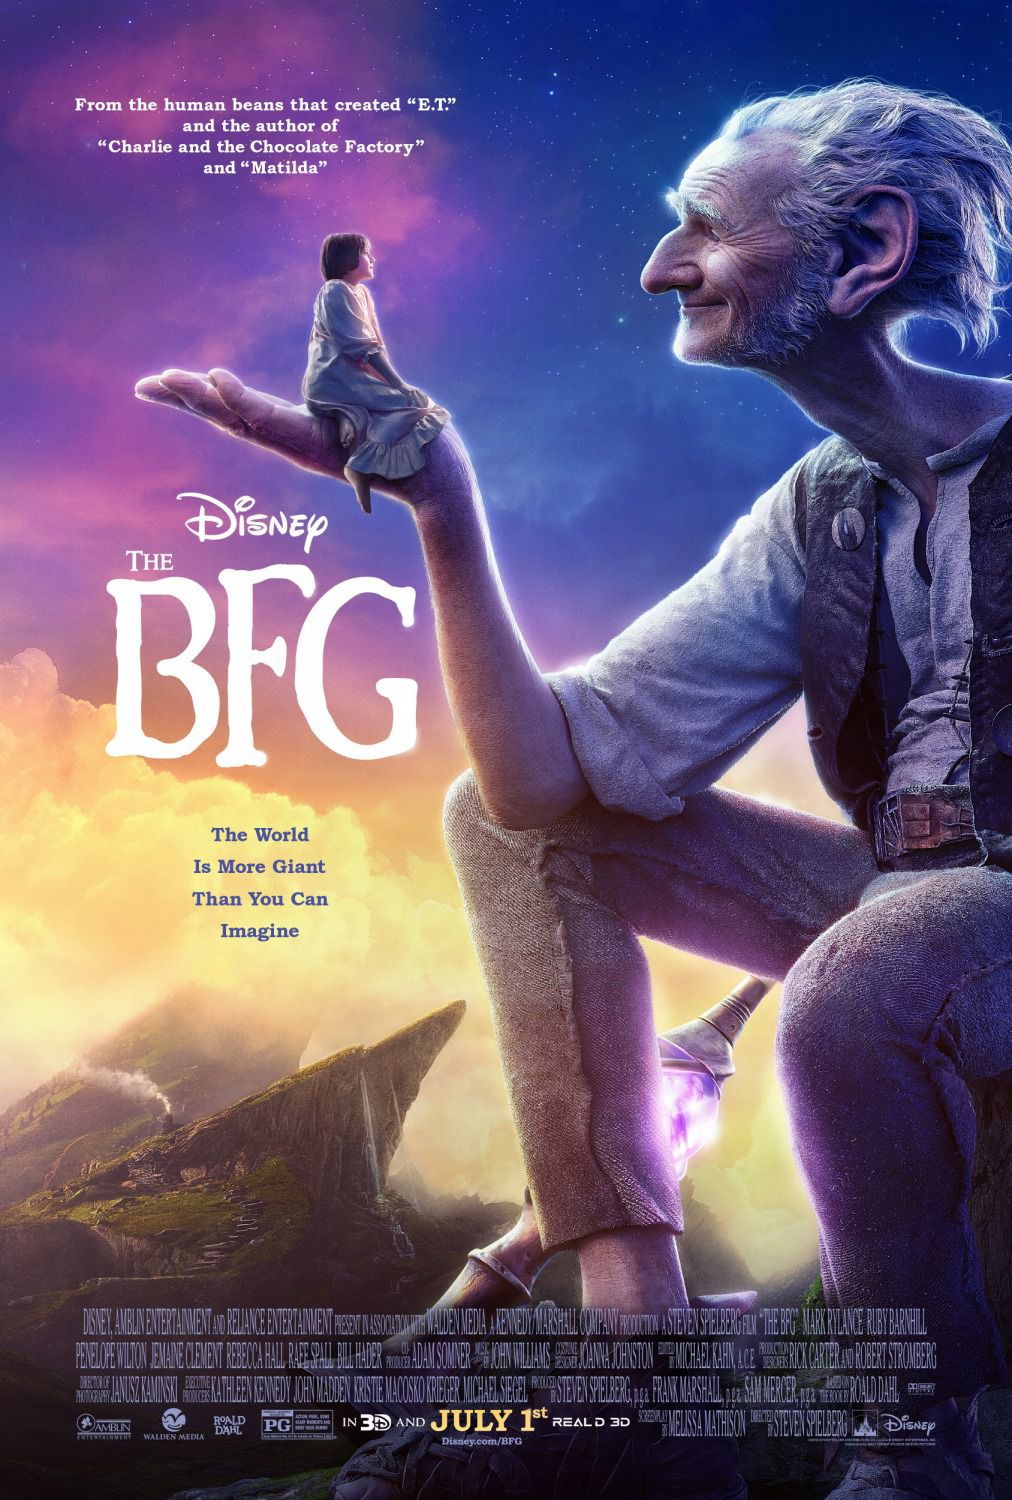 BFG - Big Friendly Giant - animated film poster